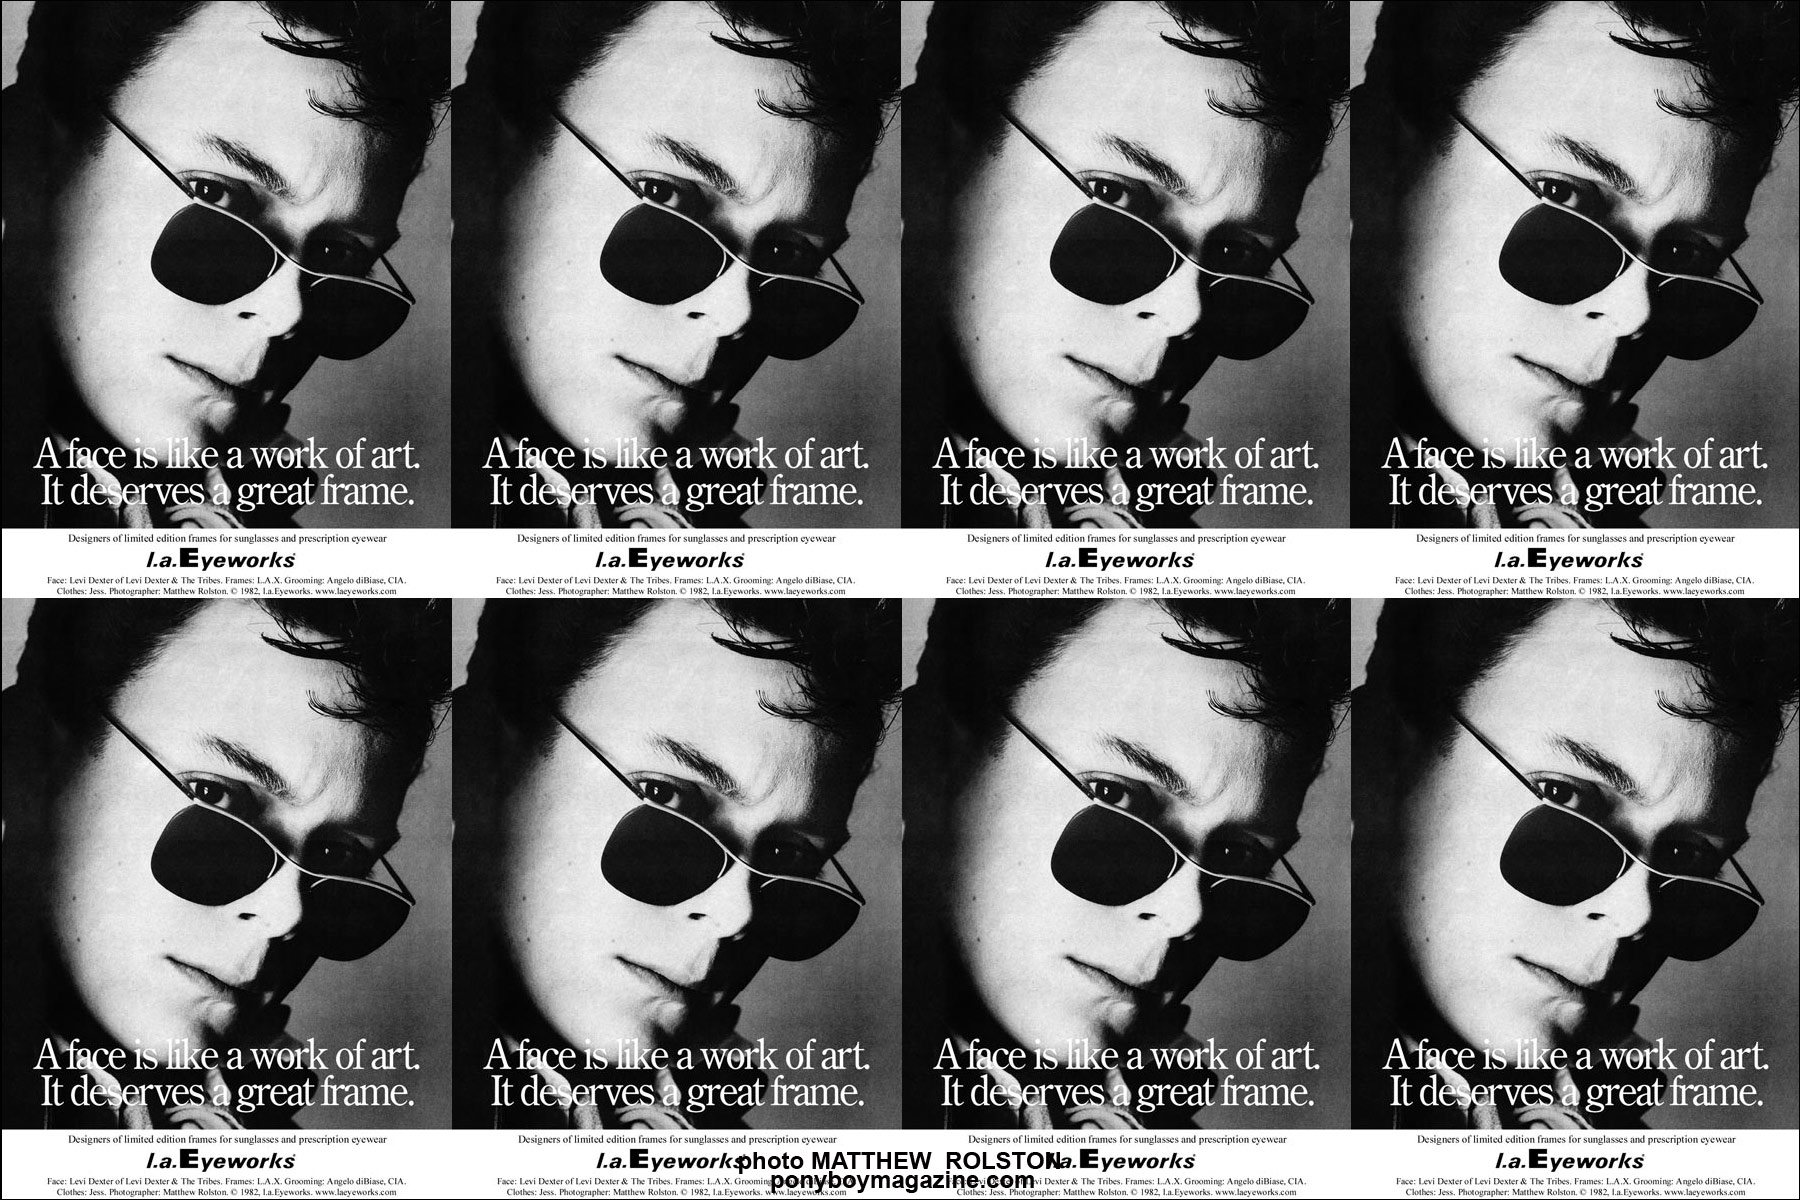 L.A. Eyeworks ad from the 80's with Rockabilly legend Levi Dexter, Ponyboy Magazine.